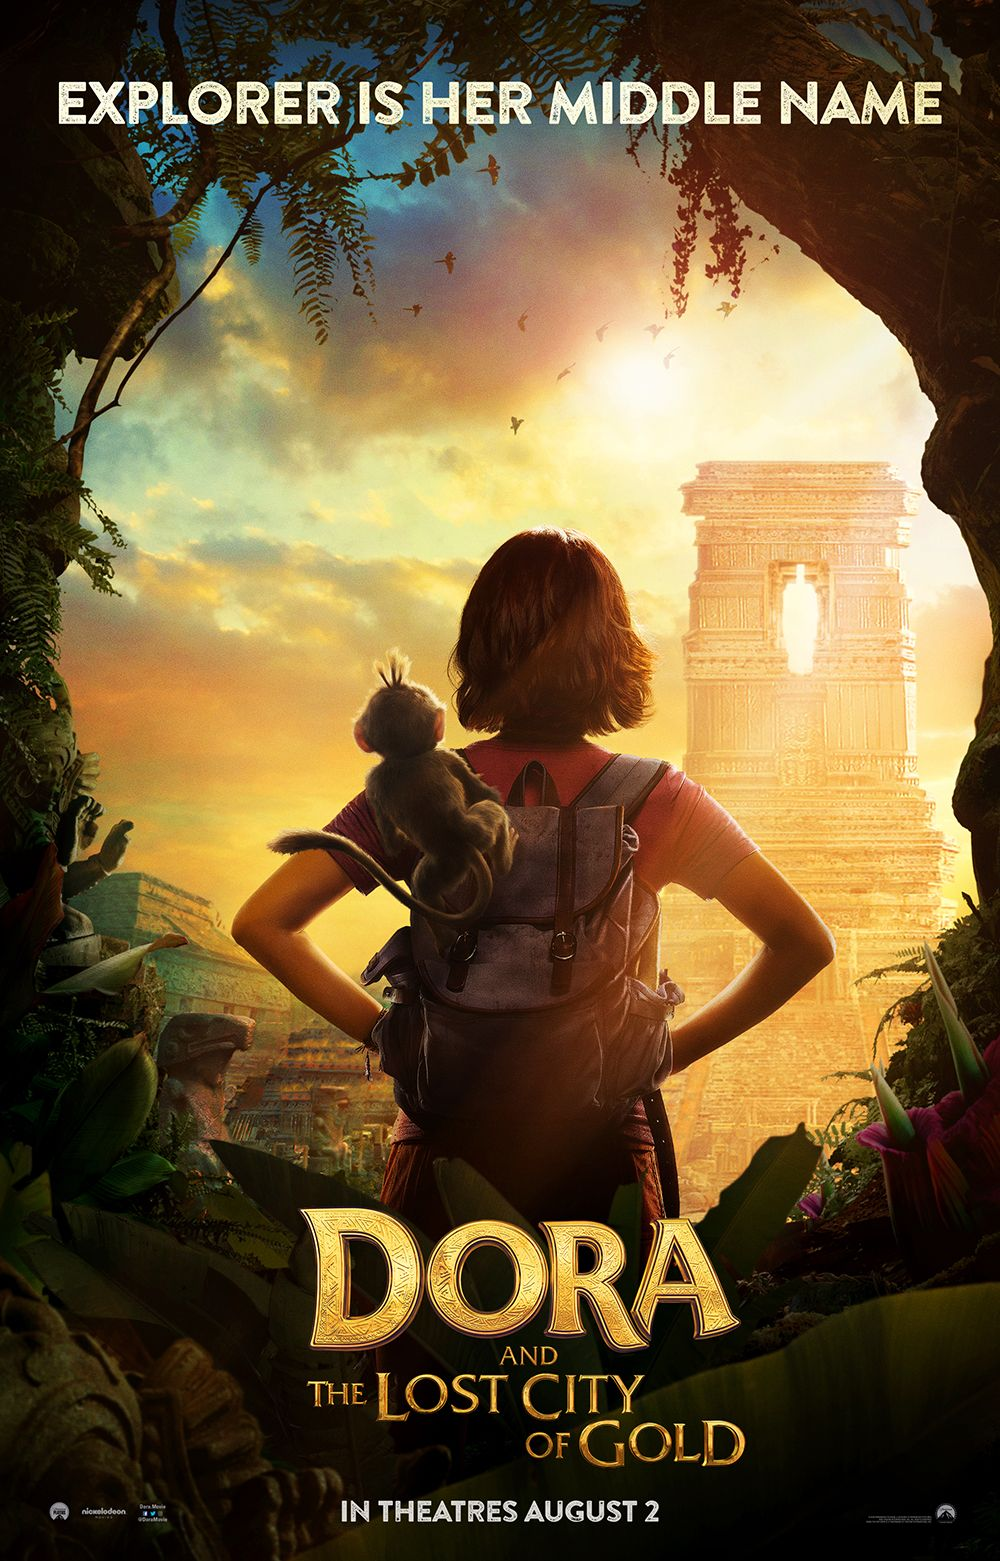 'Dora and the Lost City of Gold' Poster Is Ready to Go